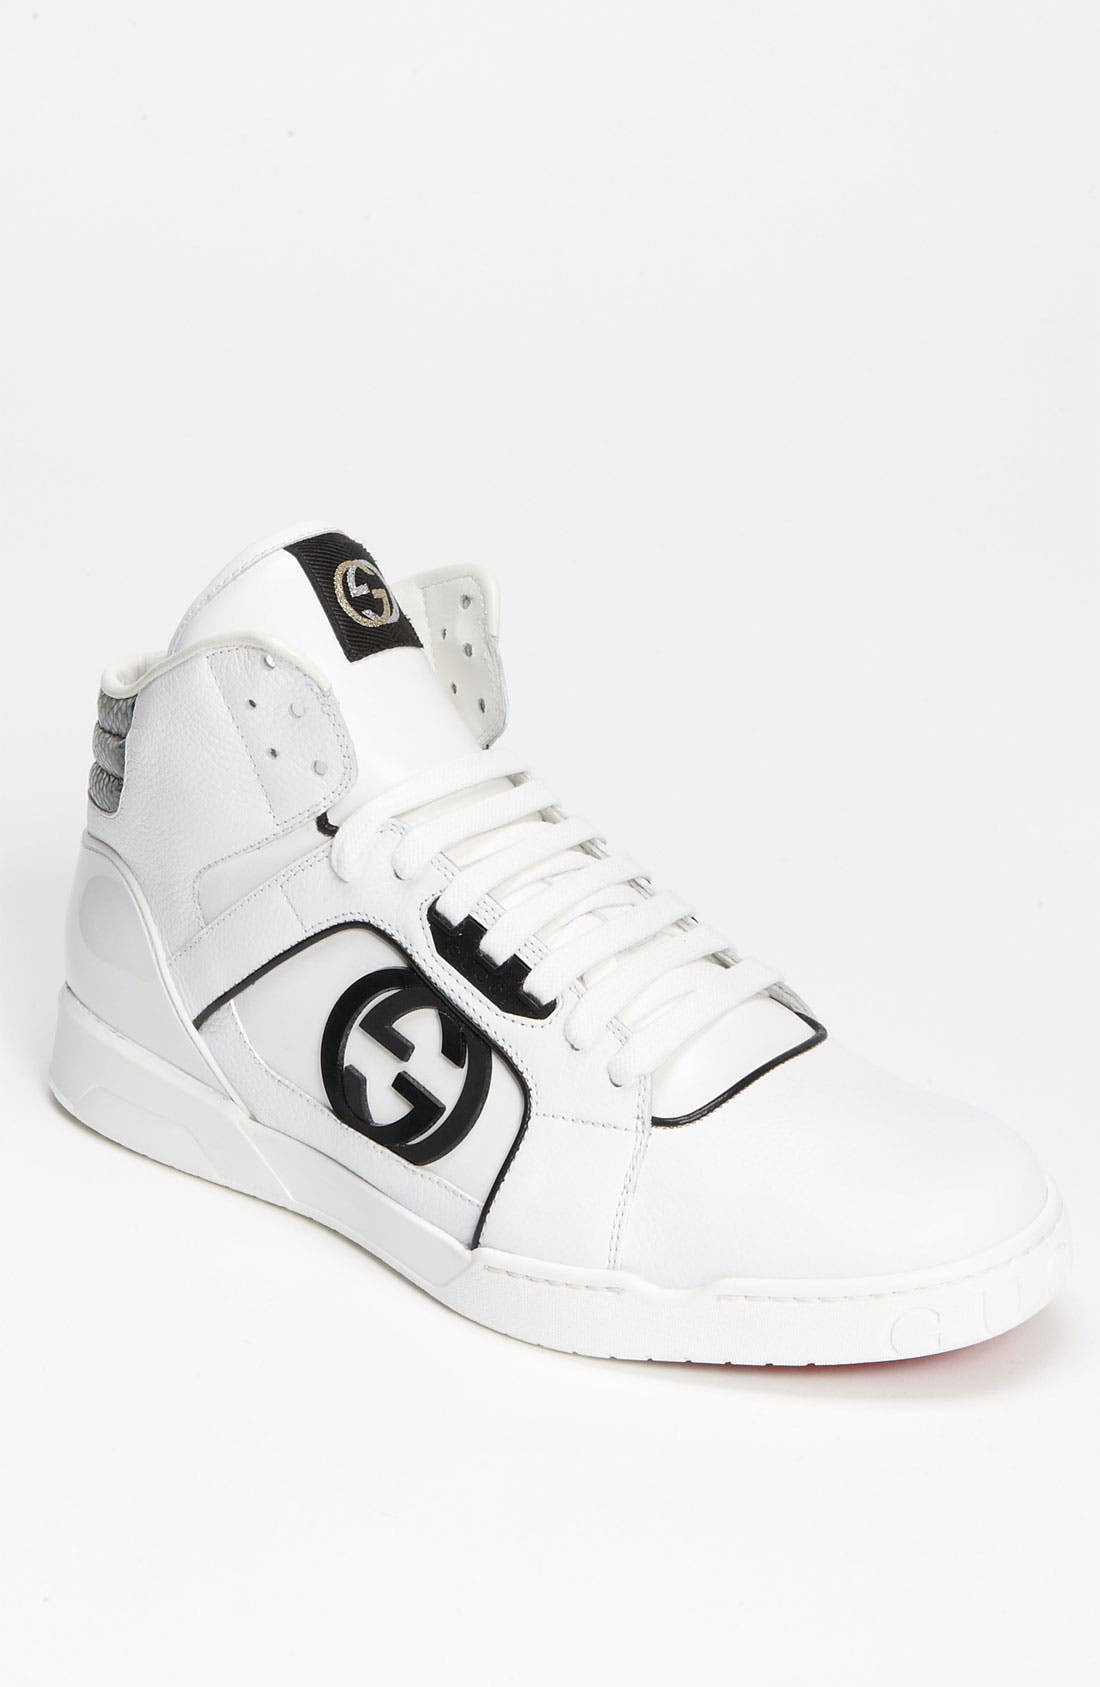 Main Image - Gucci 'Rebound' Mid High Top Sneaker